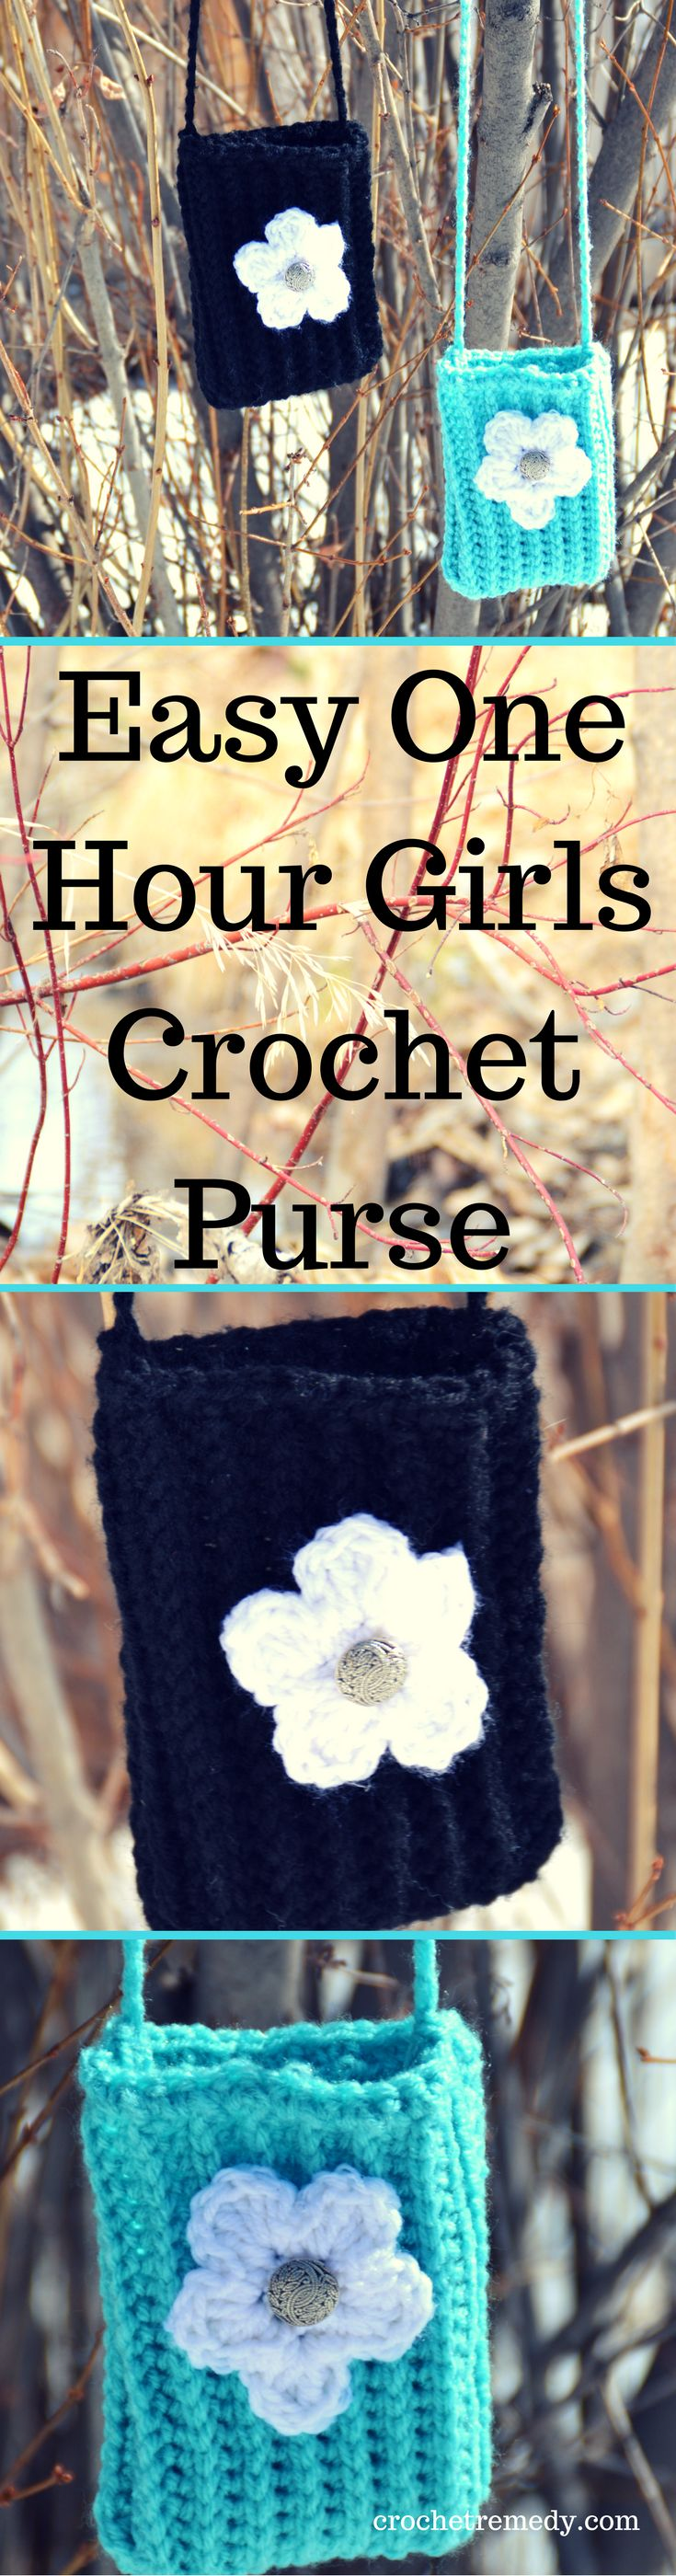 Crochet: Easy, one-hour, girls crochet purse | Free Pattern | Crochet For Beginners